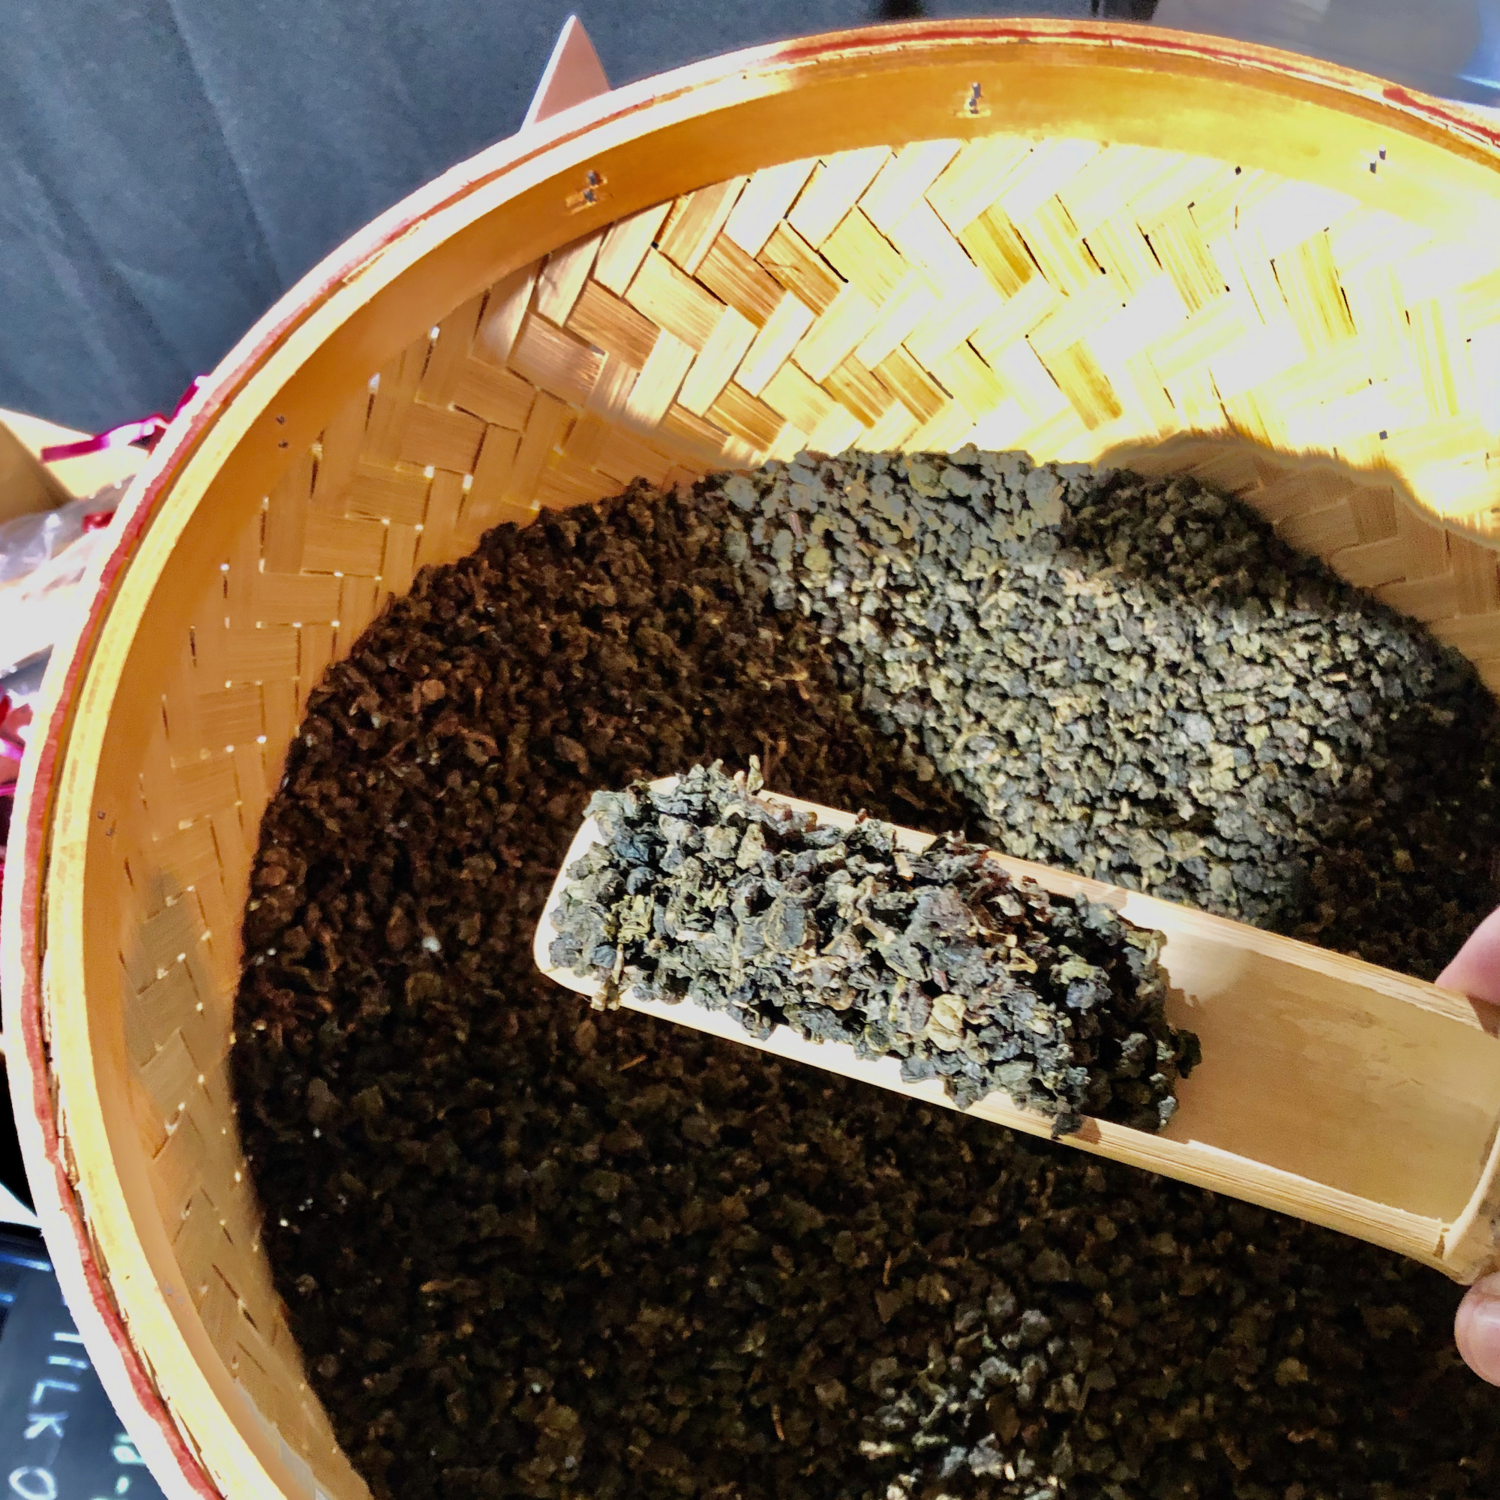 *BEST SELLING* Midnight Baked Oolong: smoky yet floral Chin Shin oolong tea, handpicked and hand-roasted in London